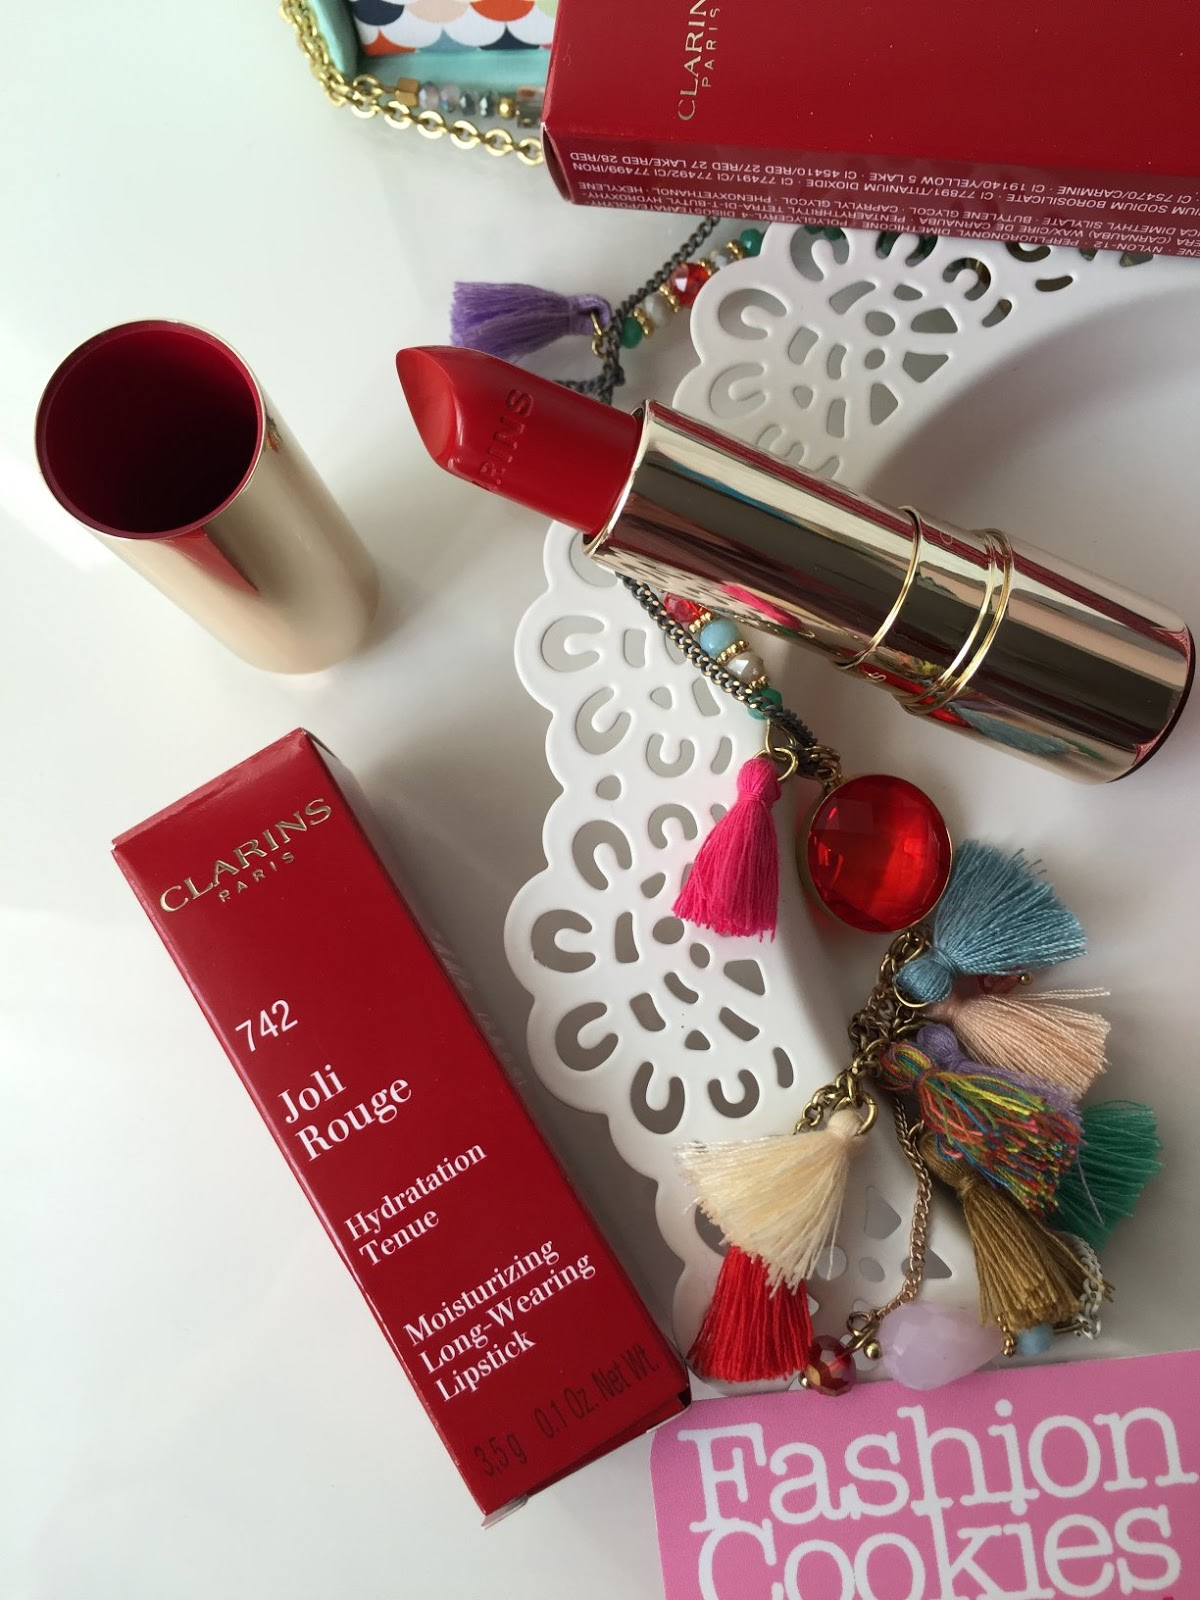 Clarins Joli Rouge lipstick joli rouge red 742 review on Fashion and Cookies beauty blog, beauty blogger from Italy